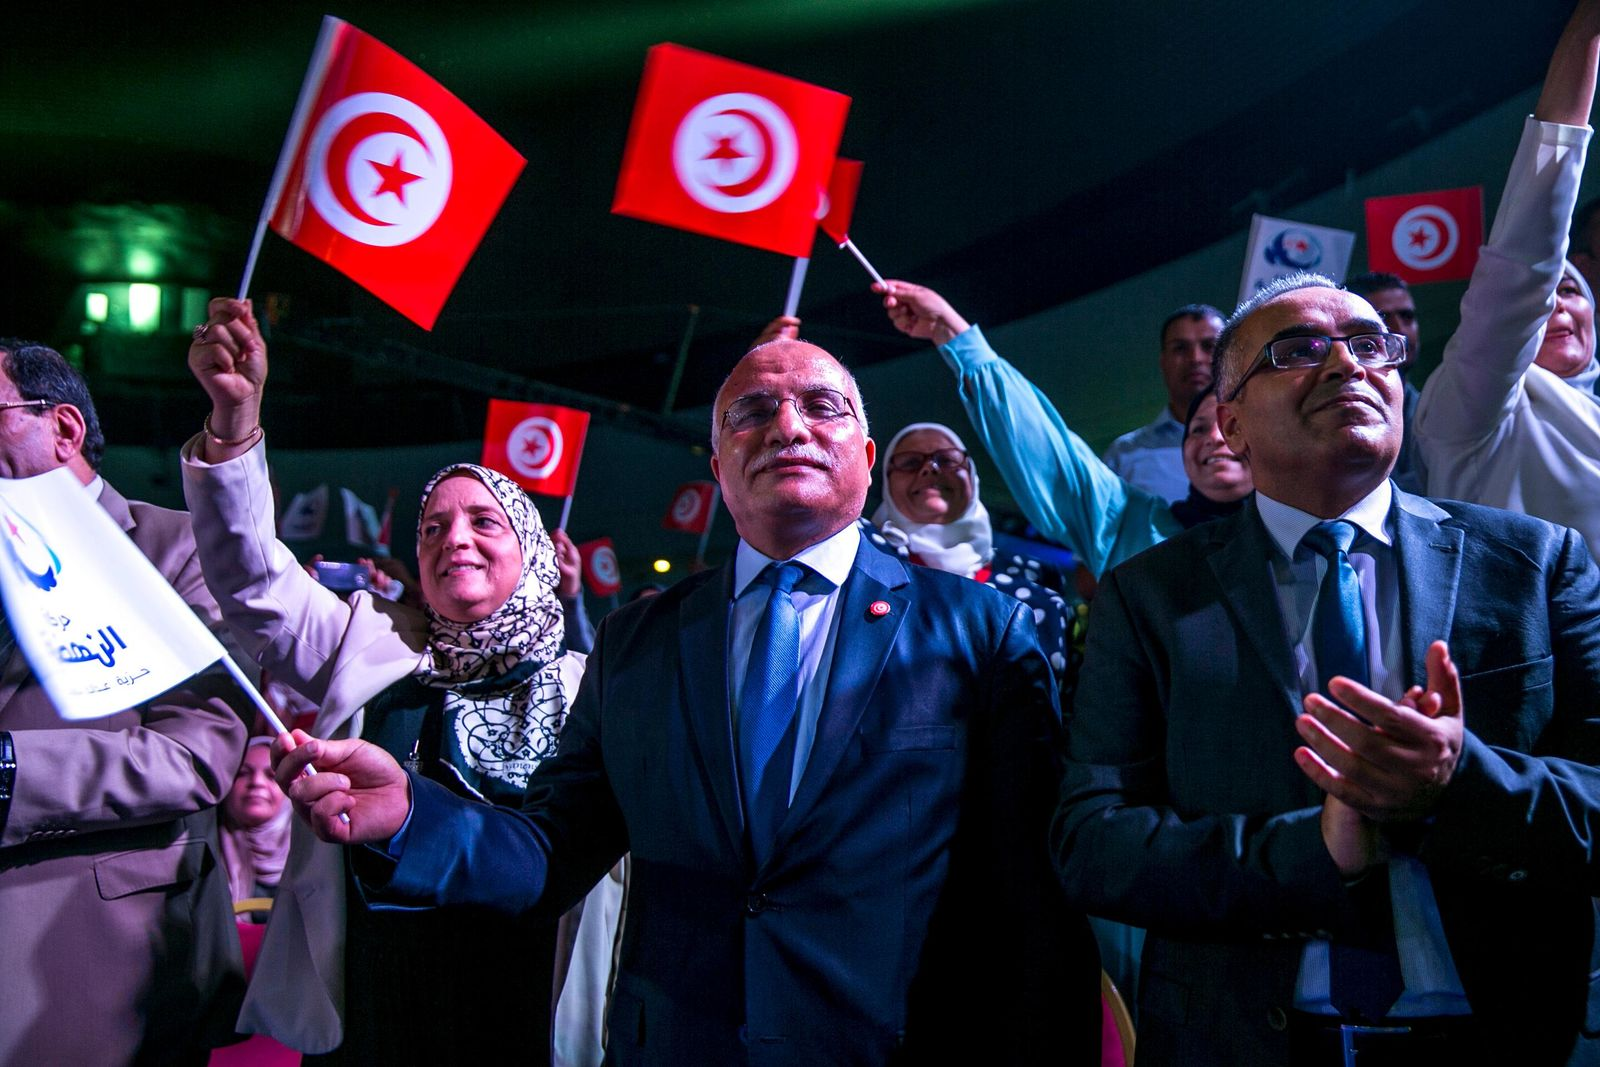 Supporters of Islamist party Ennahda attend the meeting with Vice President of the Islamist party Ennahda and candidate for the upcoming presidential elections Abdelfattah Mourou in Tunis, Tunisia, Friday, Aug. 30, 2019. (AP Photo/Hassene Dridi)